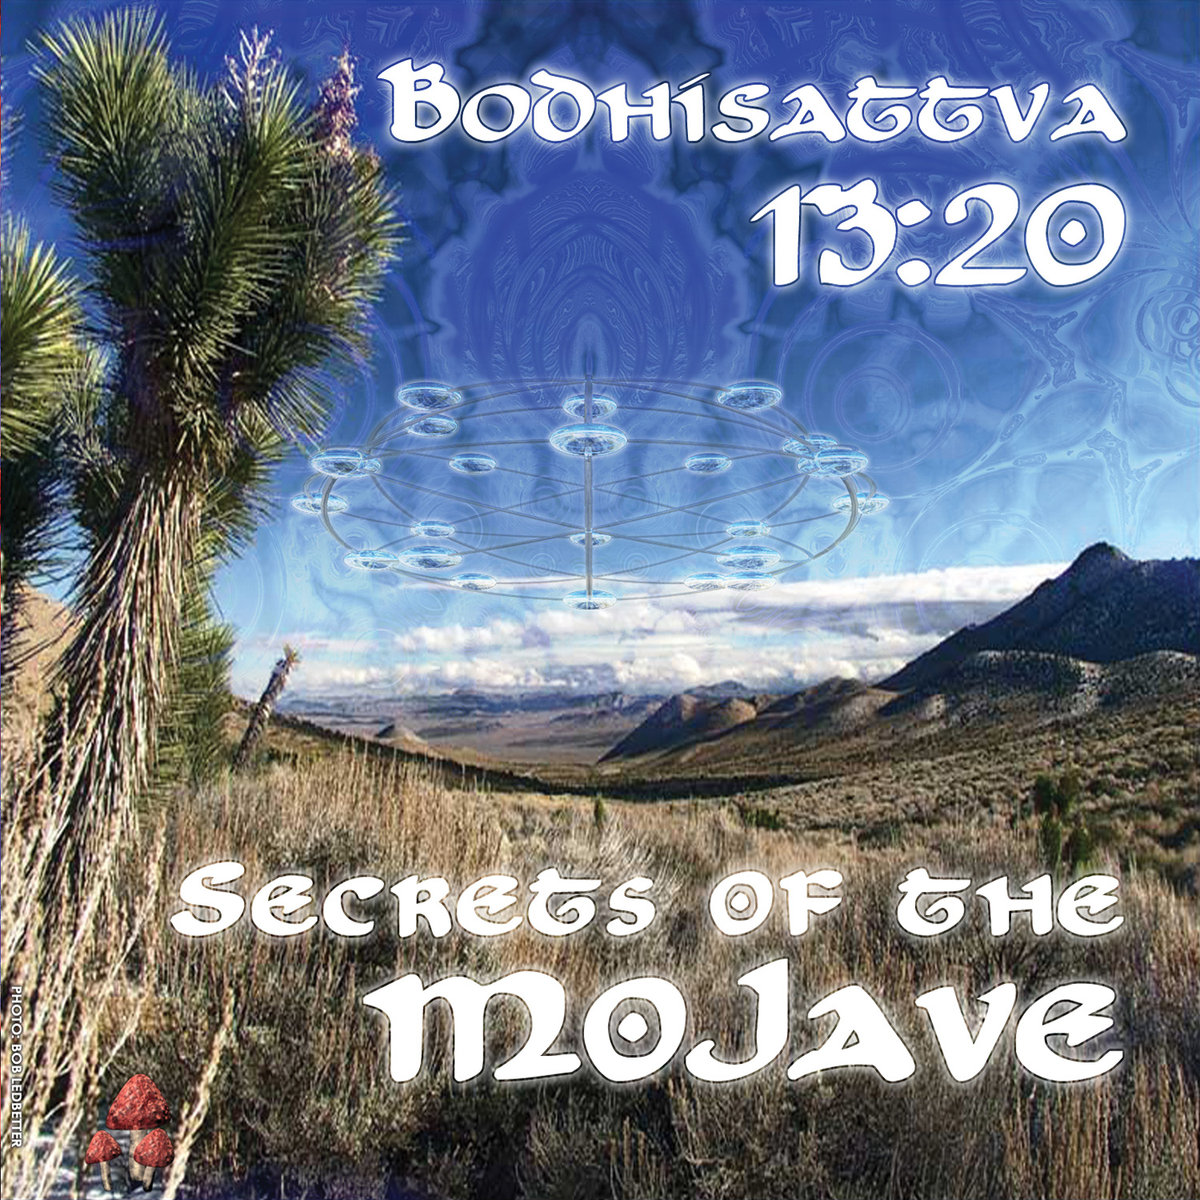 Bodhisattva 13:20 - Gravitron Deflector @ 'Secrets of the Mojave' album (electronic, goa)